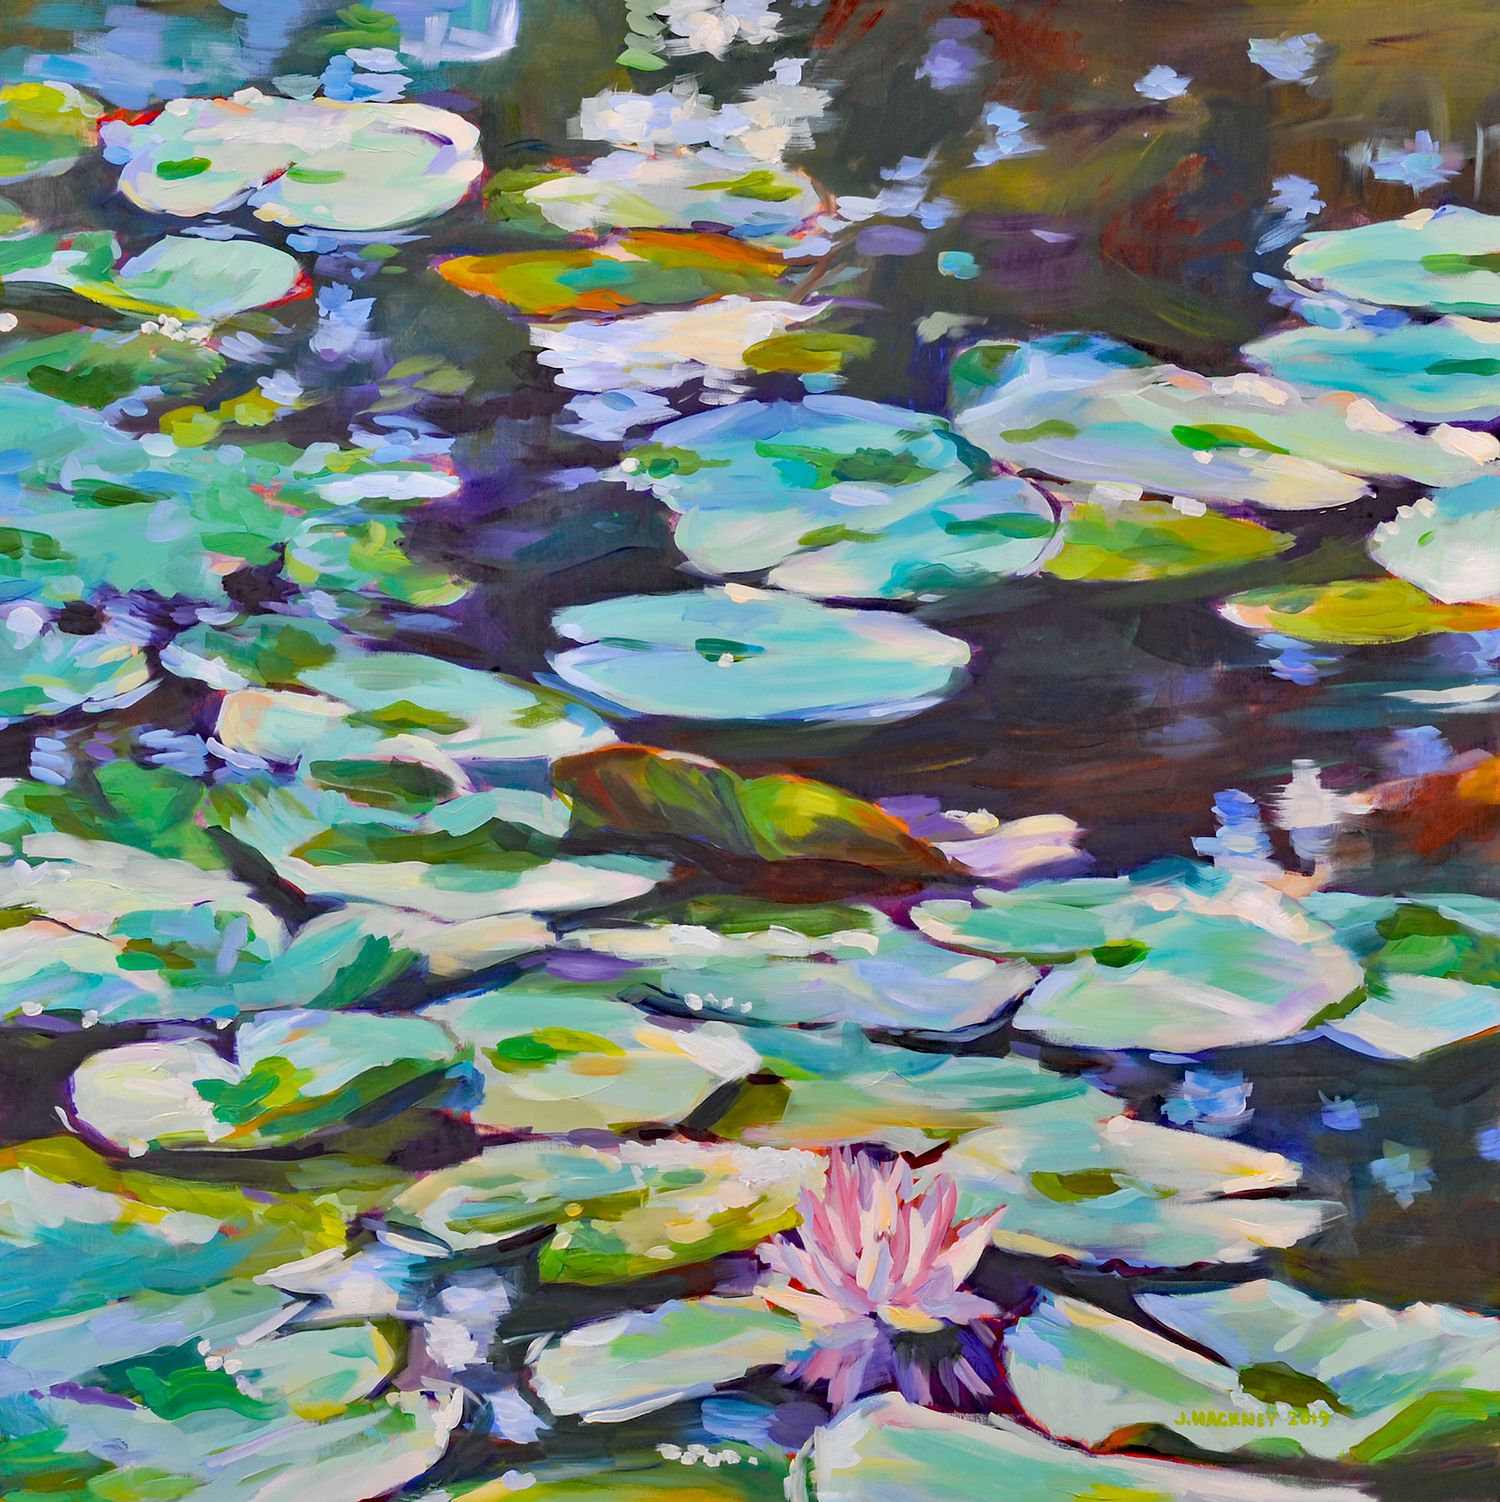 WATER LILY 36 x 36 IN